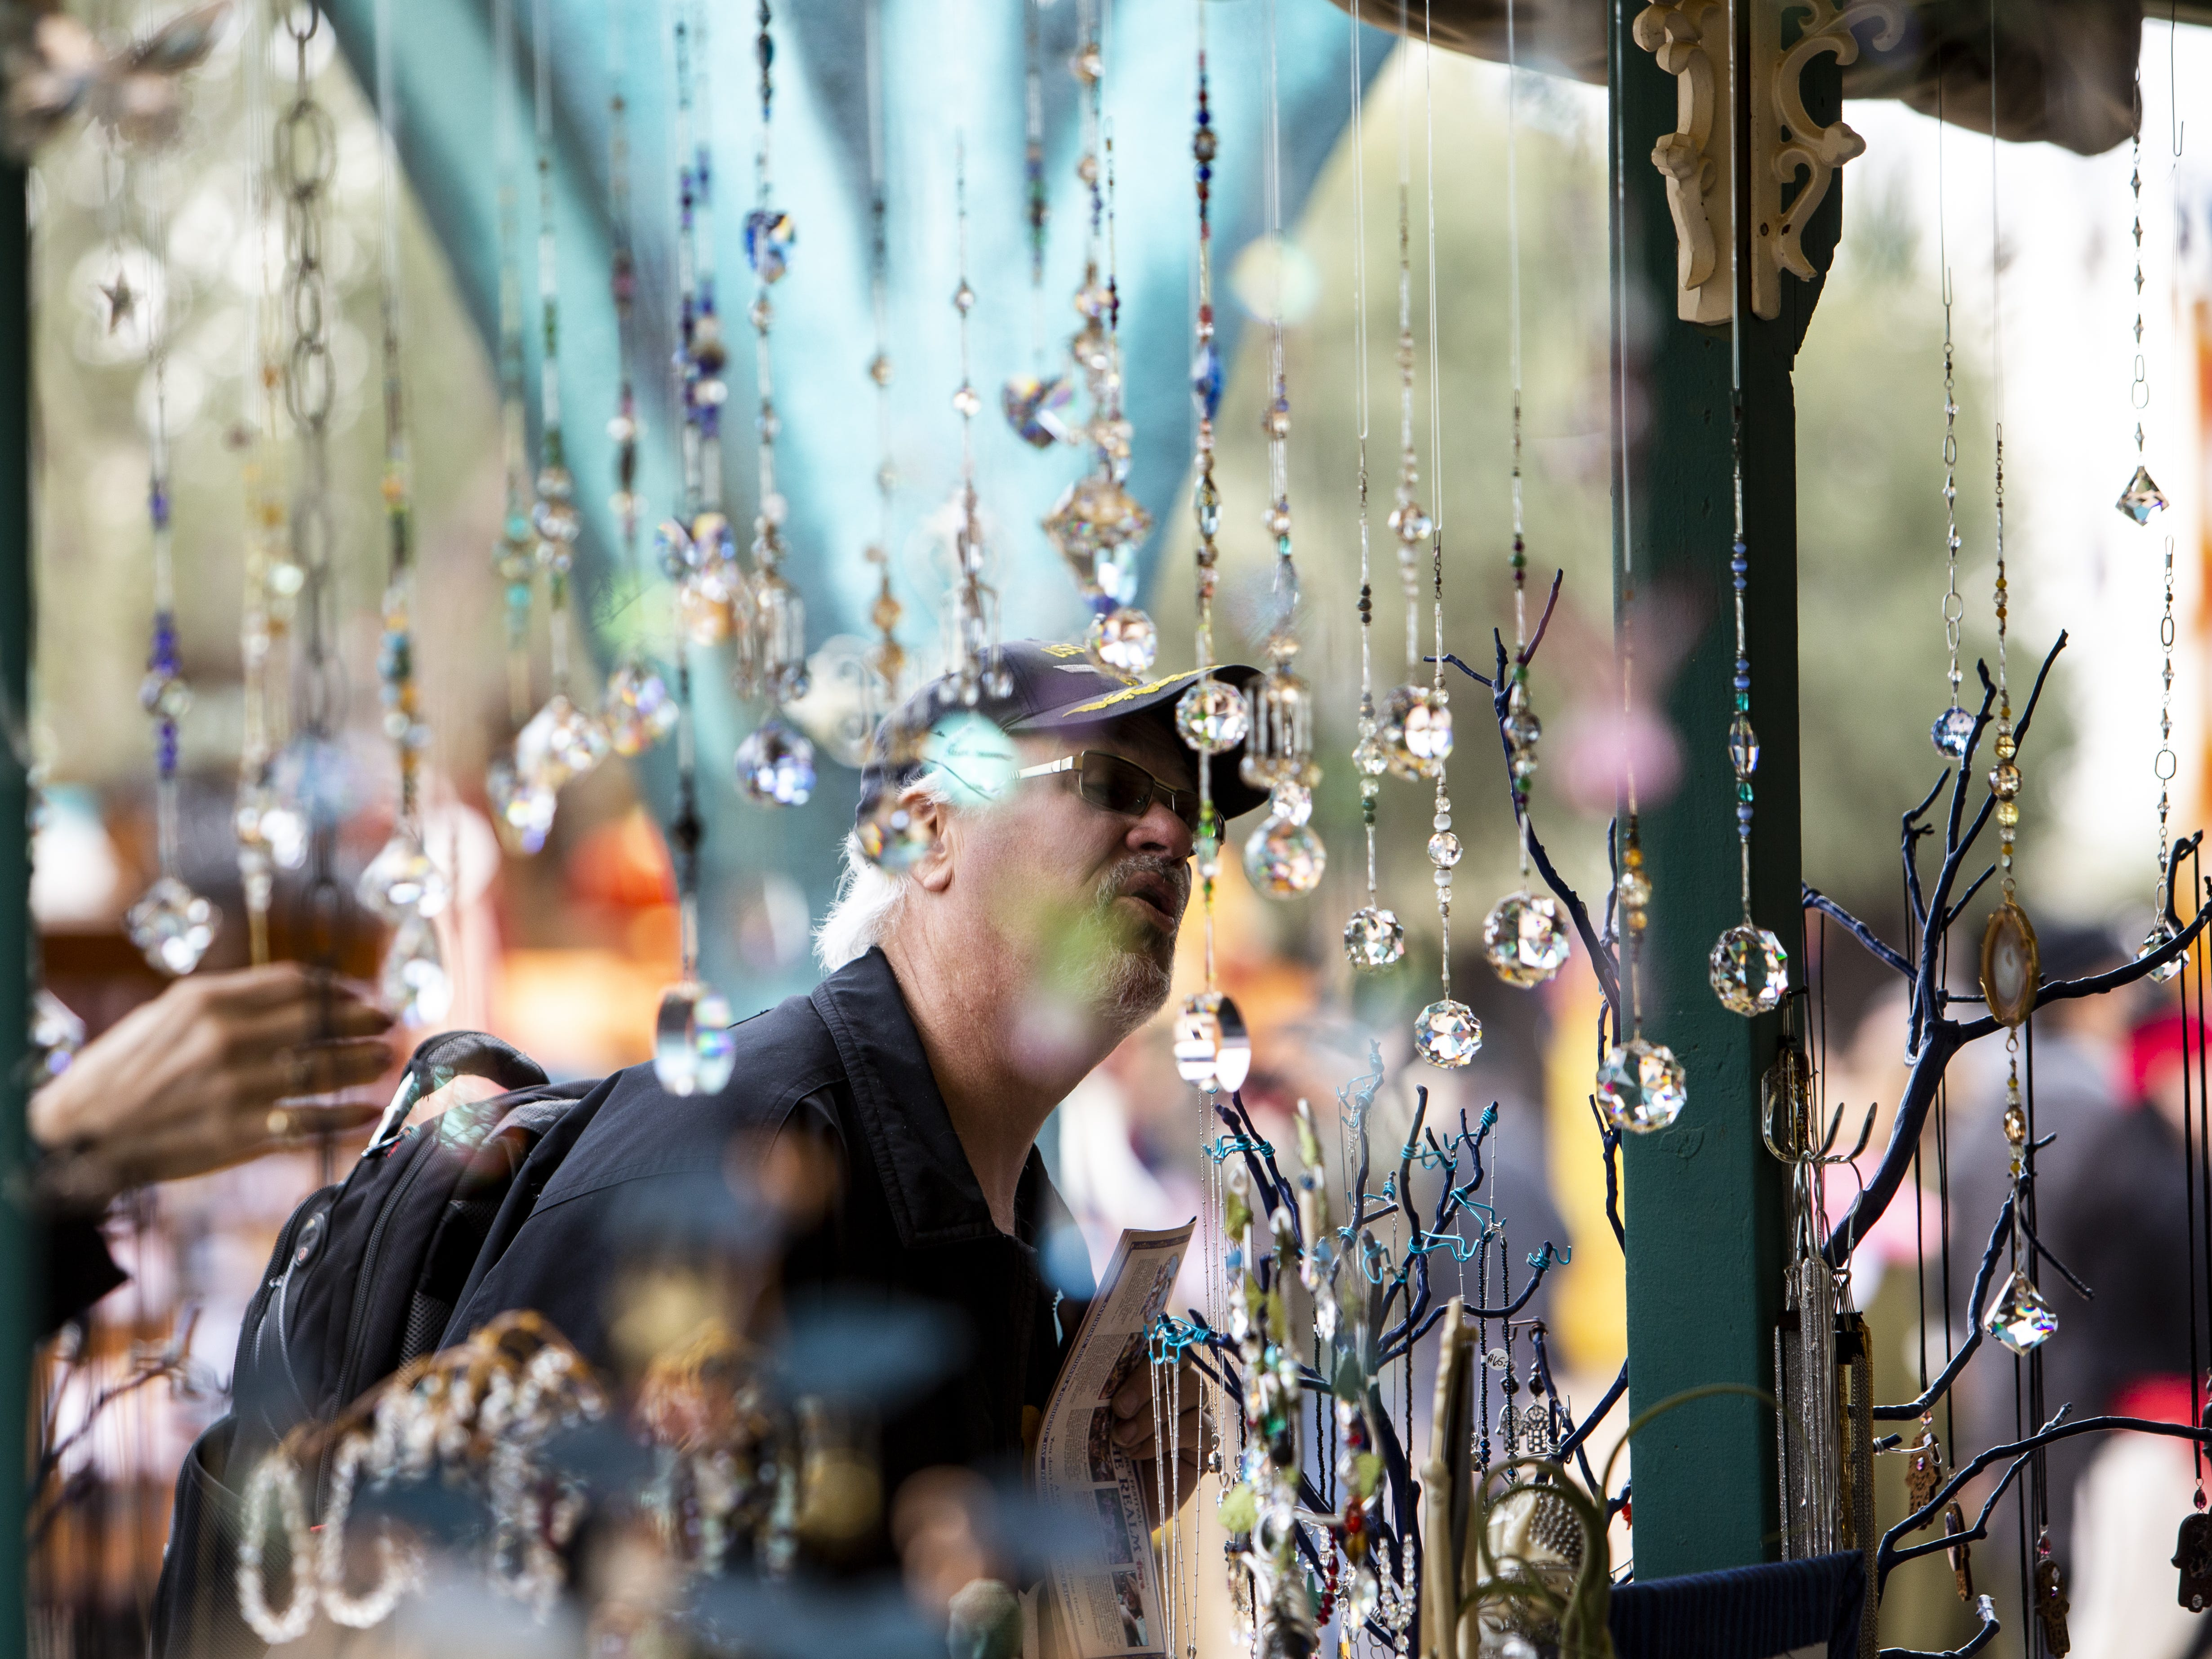 Many stands sold arts and crafts at the Arizona Renaissance Festival 2019 on Feb. 9, 2019 in Gold Canyon, Ariz.